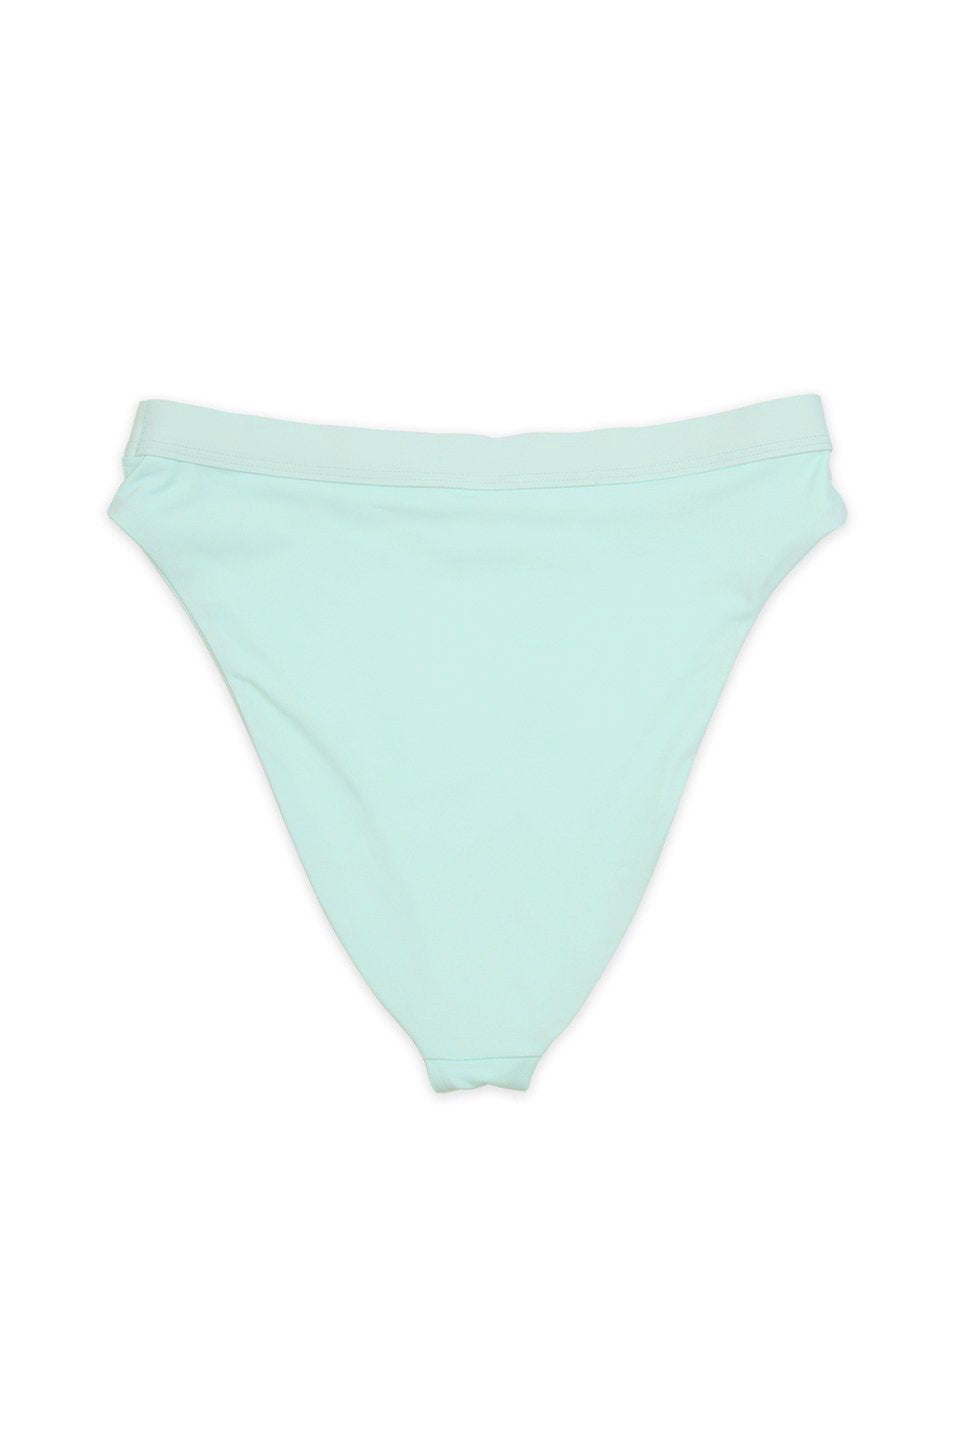 Seamless Cheeky Hi Waist Banded Bottom in Mint